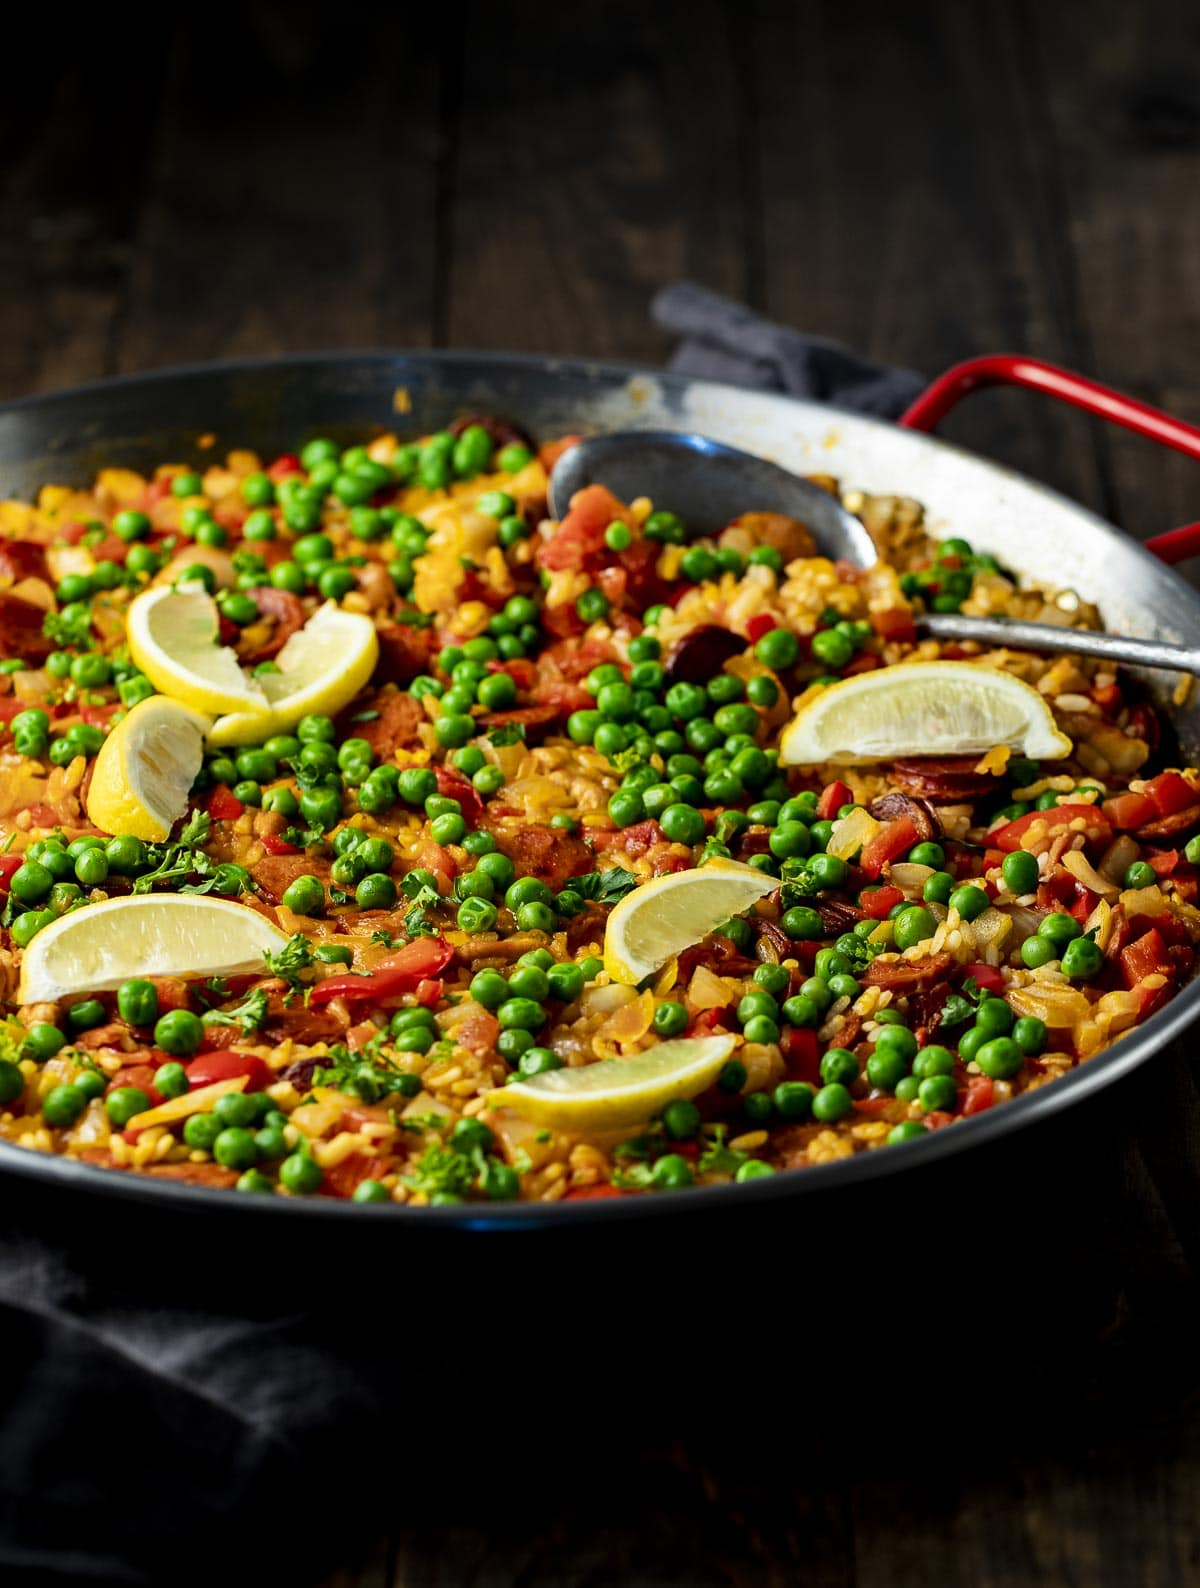 Side view of Spanish chicken and chorizo paella in a pan.